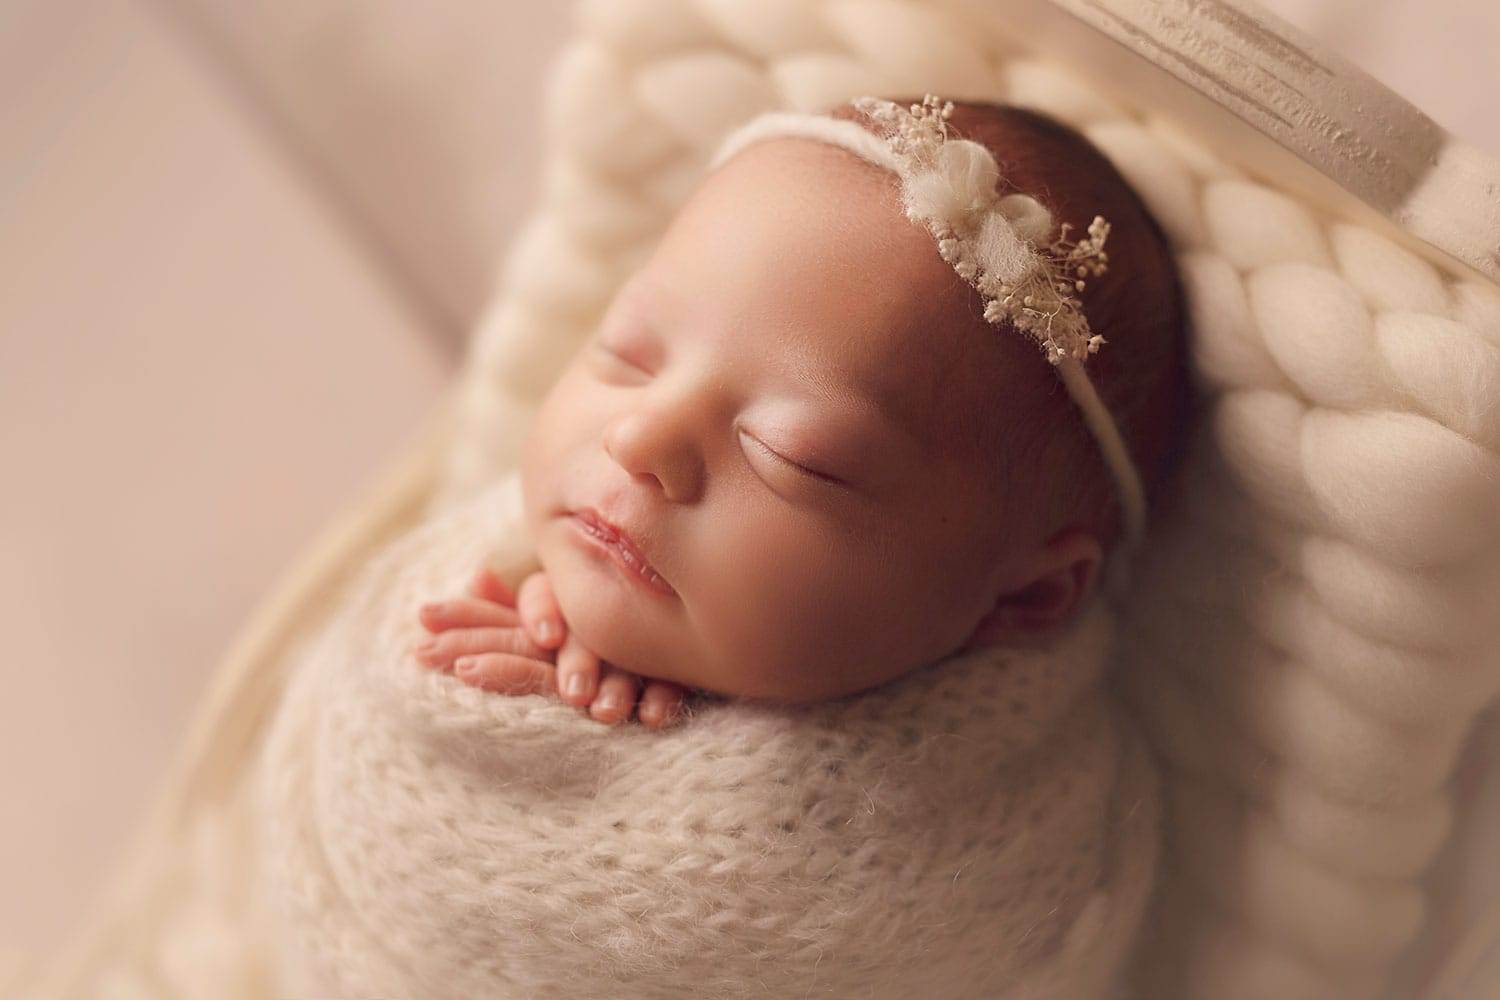 newborn baby profile